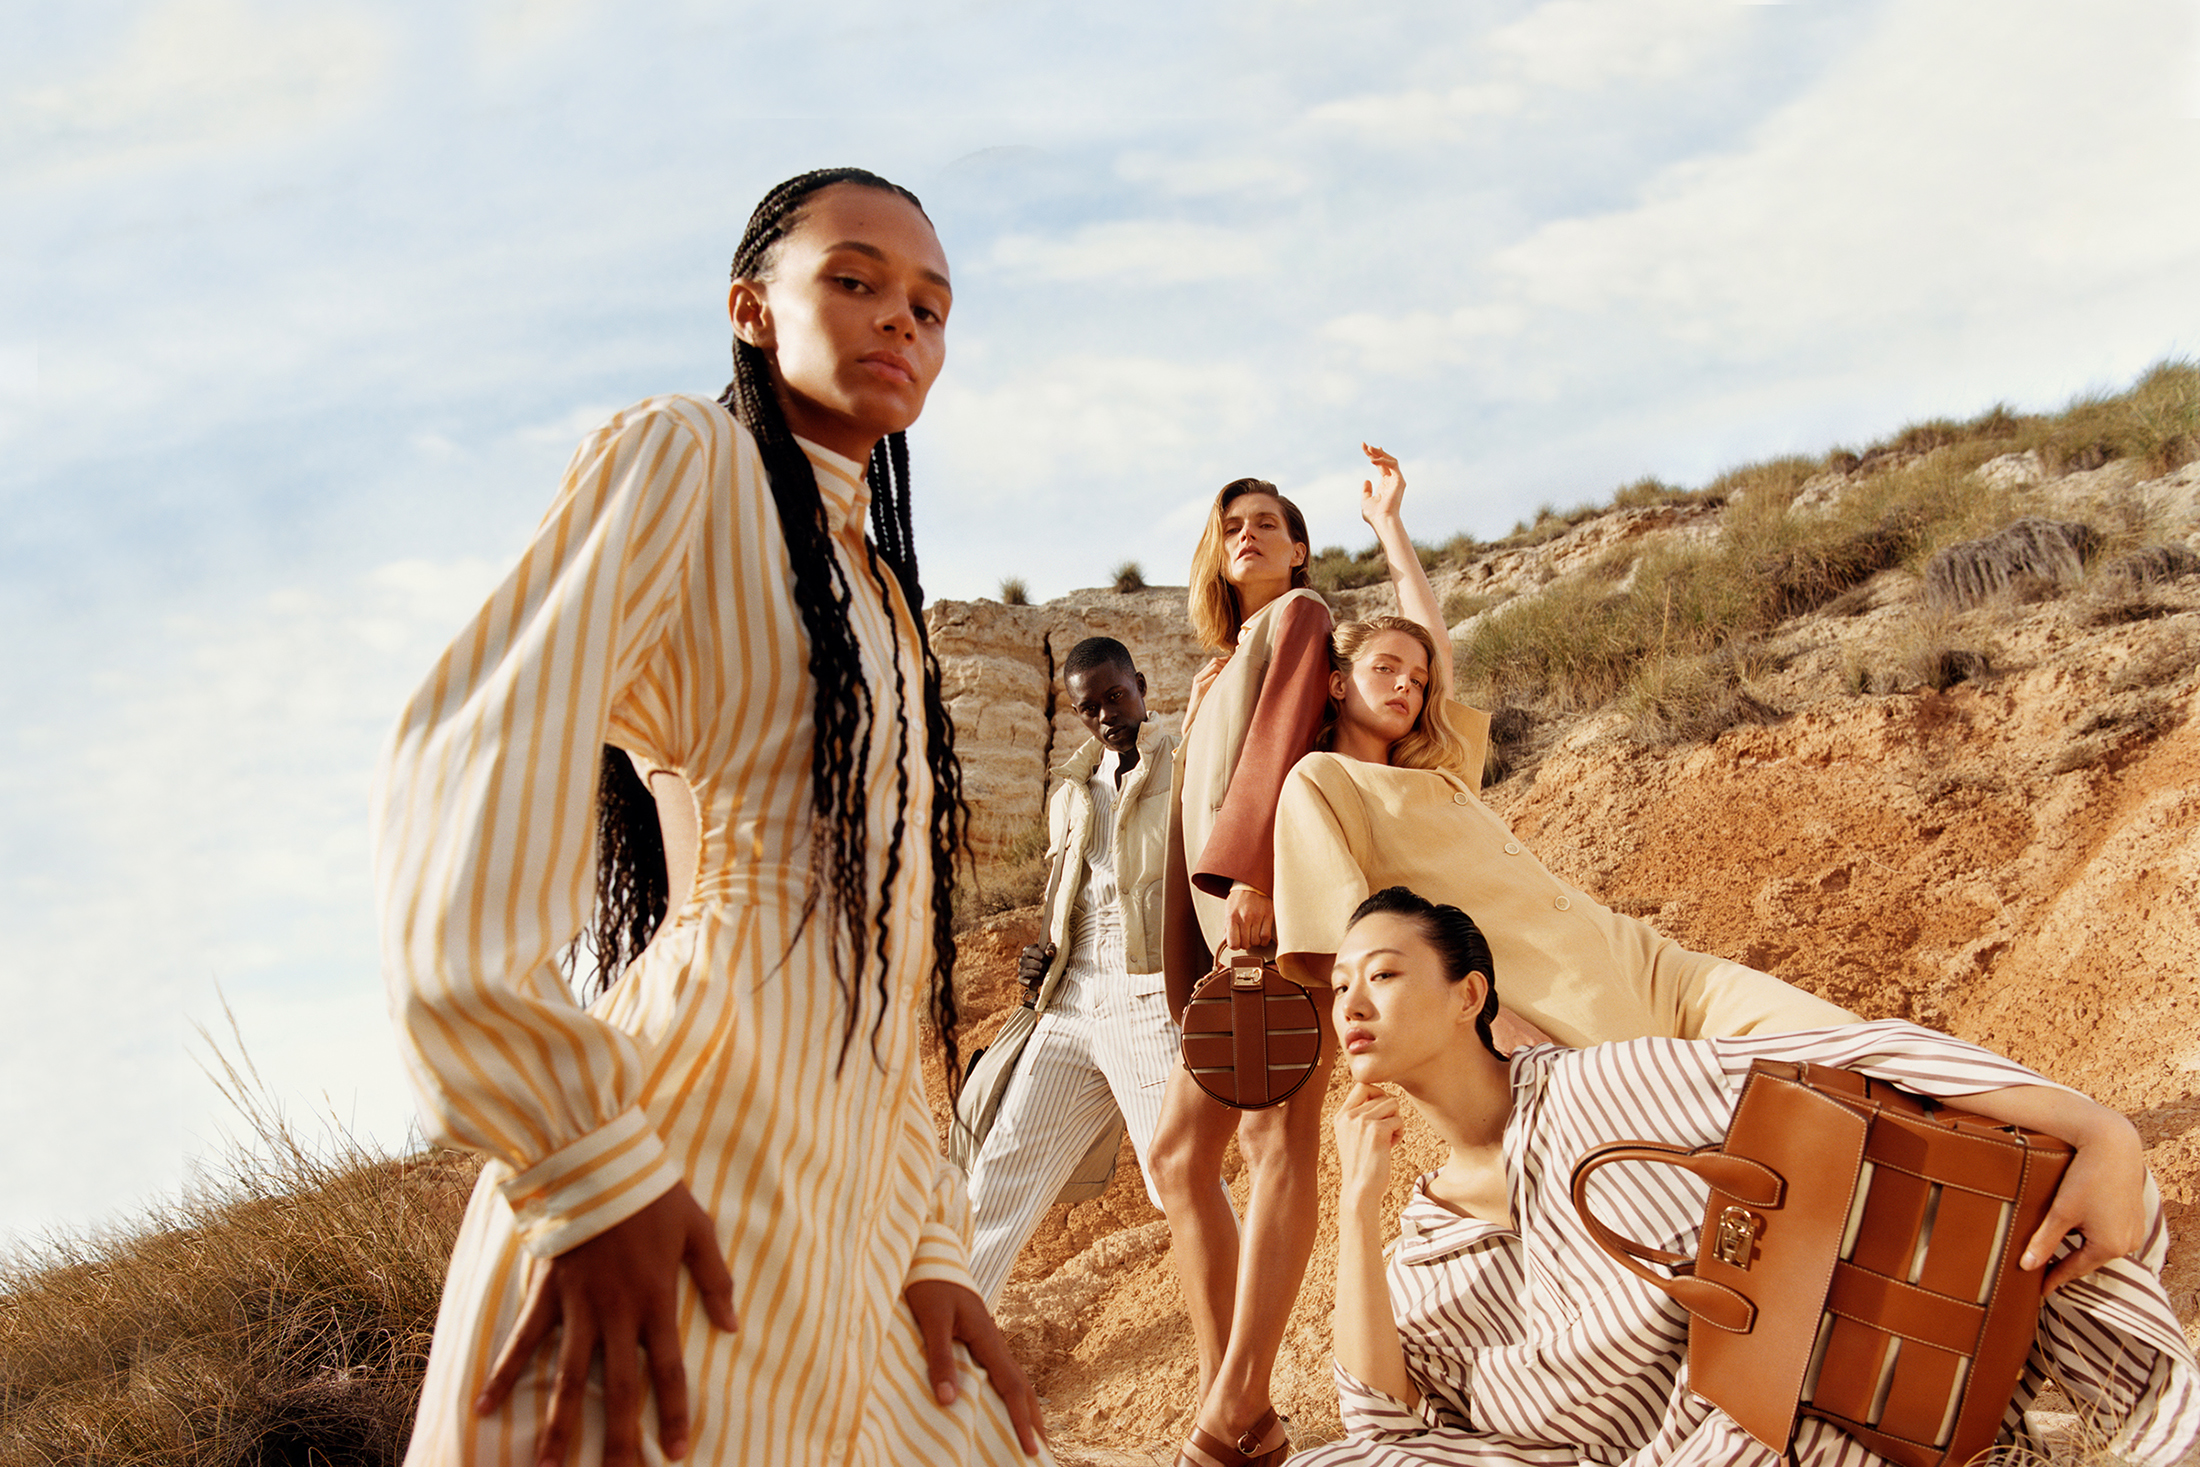 Salvatore Ferragamo Spring 2020 Fashion Ad Campaign Photos